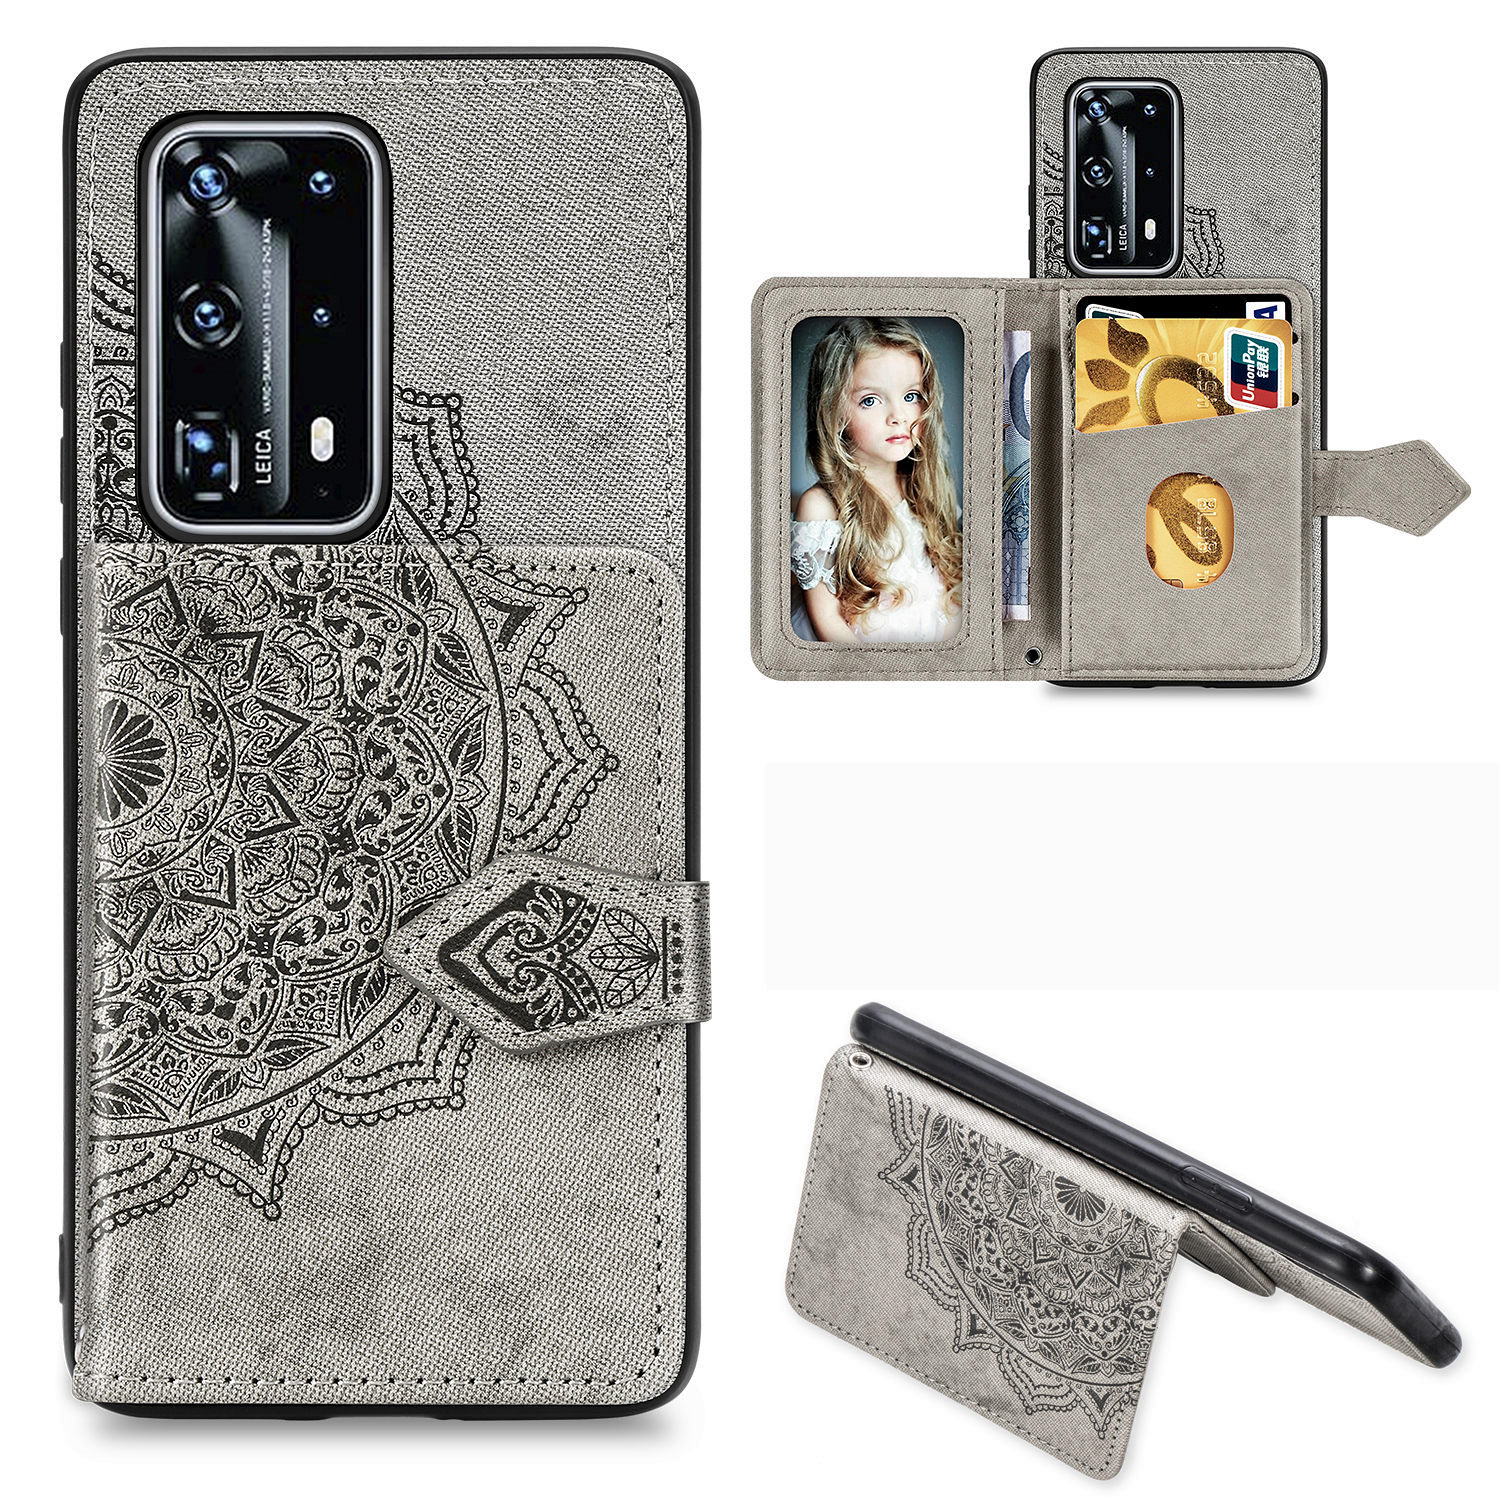 Flip Wallet Cloth Texture Phone <font><b>Cases</b></font> For <font><b>Huawei</b></font> P40 P30 Mate 30 Pro Lite Y5 Y6 <font><b>Y7</b></font> Y9 Prime Pro <font><b>2019</b></font> Honor 9X 9A 8A Back <font><b>Cover</b></font> image